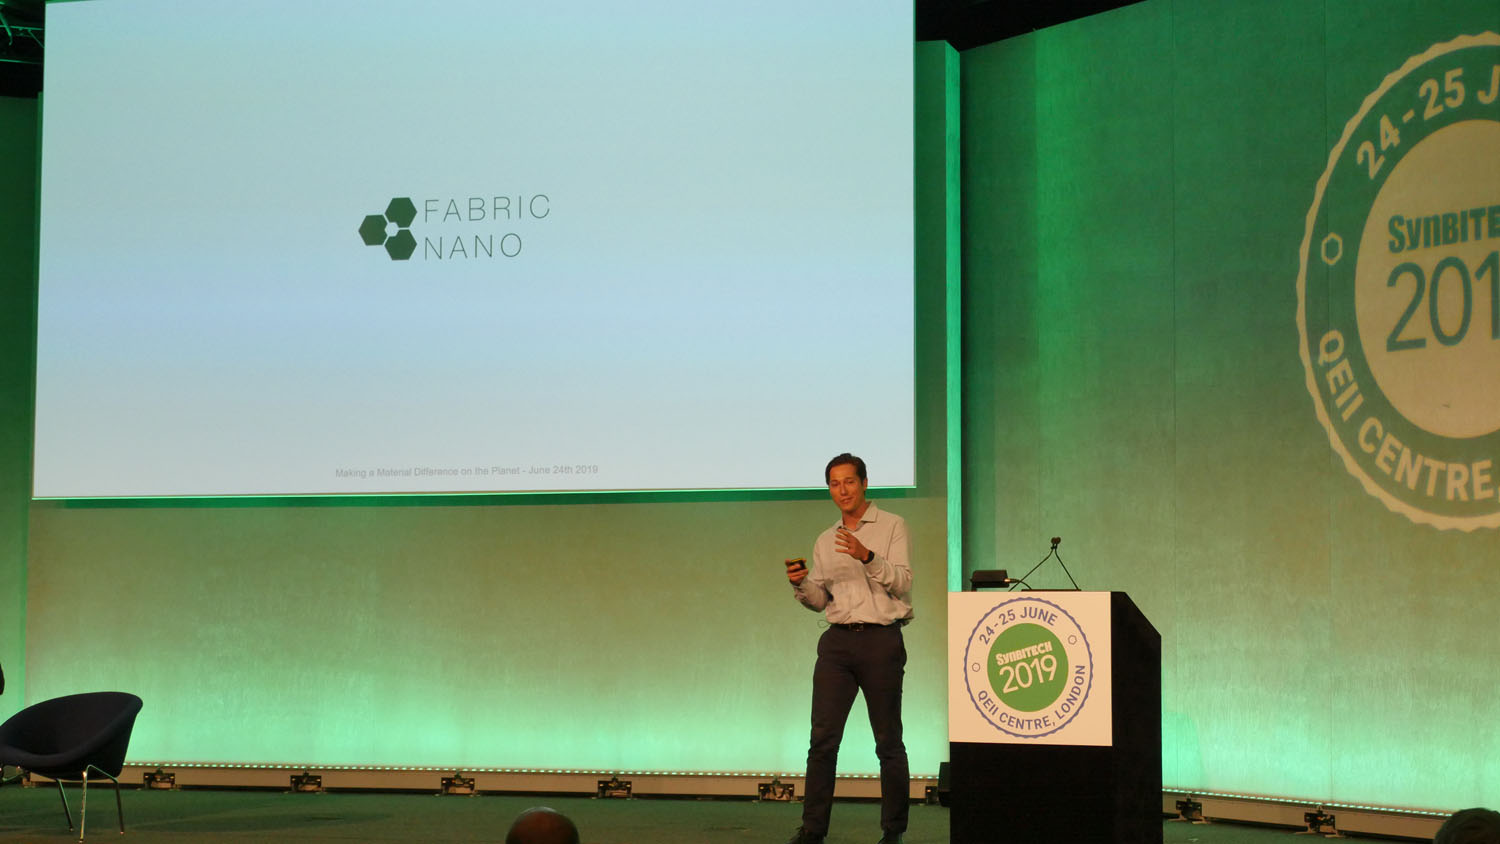 Grant Aarons, CEO & Co-founder, FabricNano shares his company's story at SynbiTECH 2019